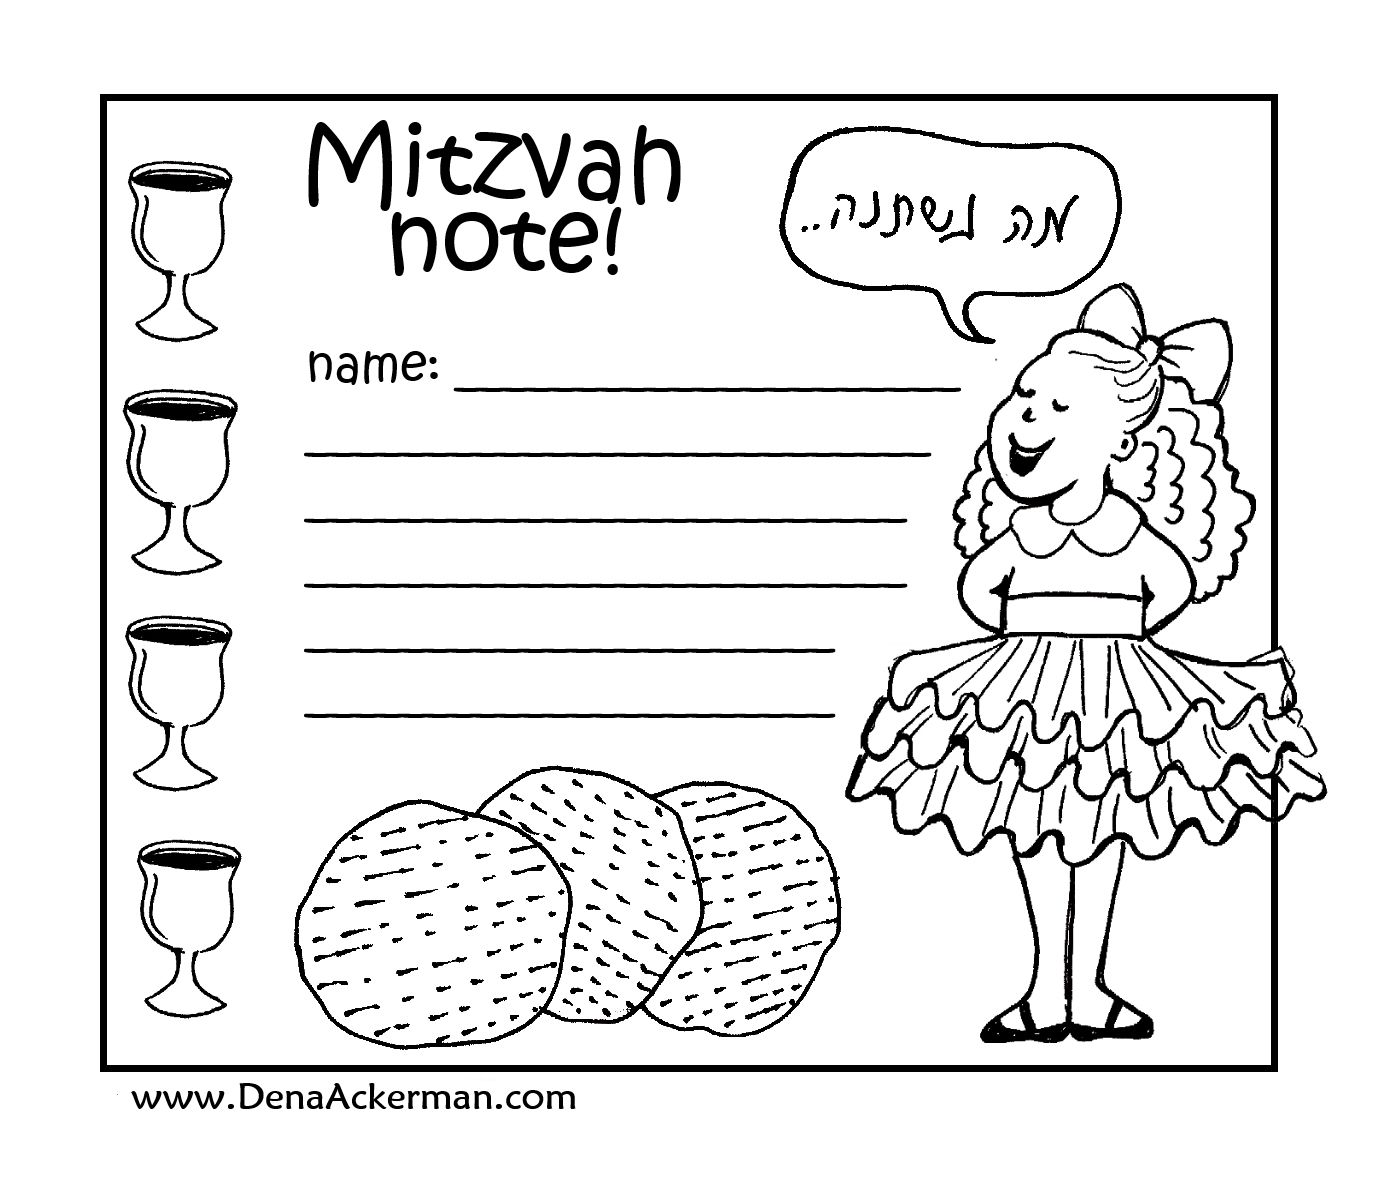 Passover Mitzvah Notes For Kids Pesach Coloring Page